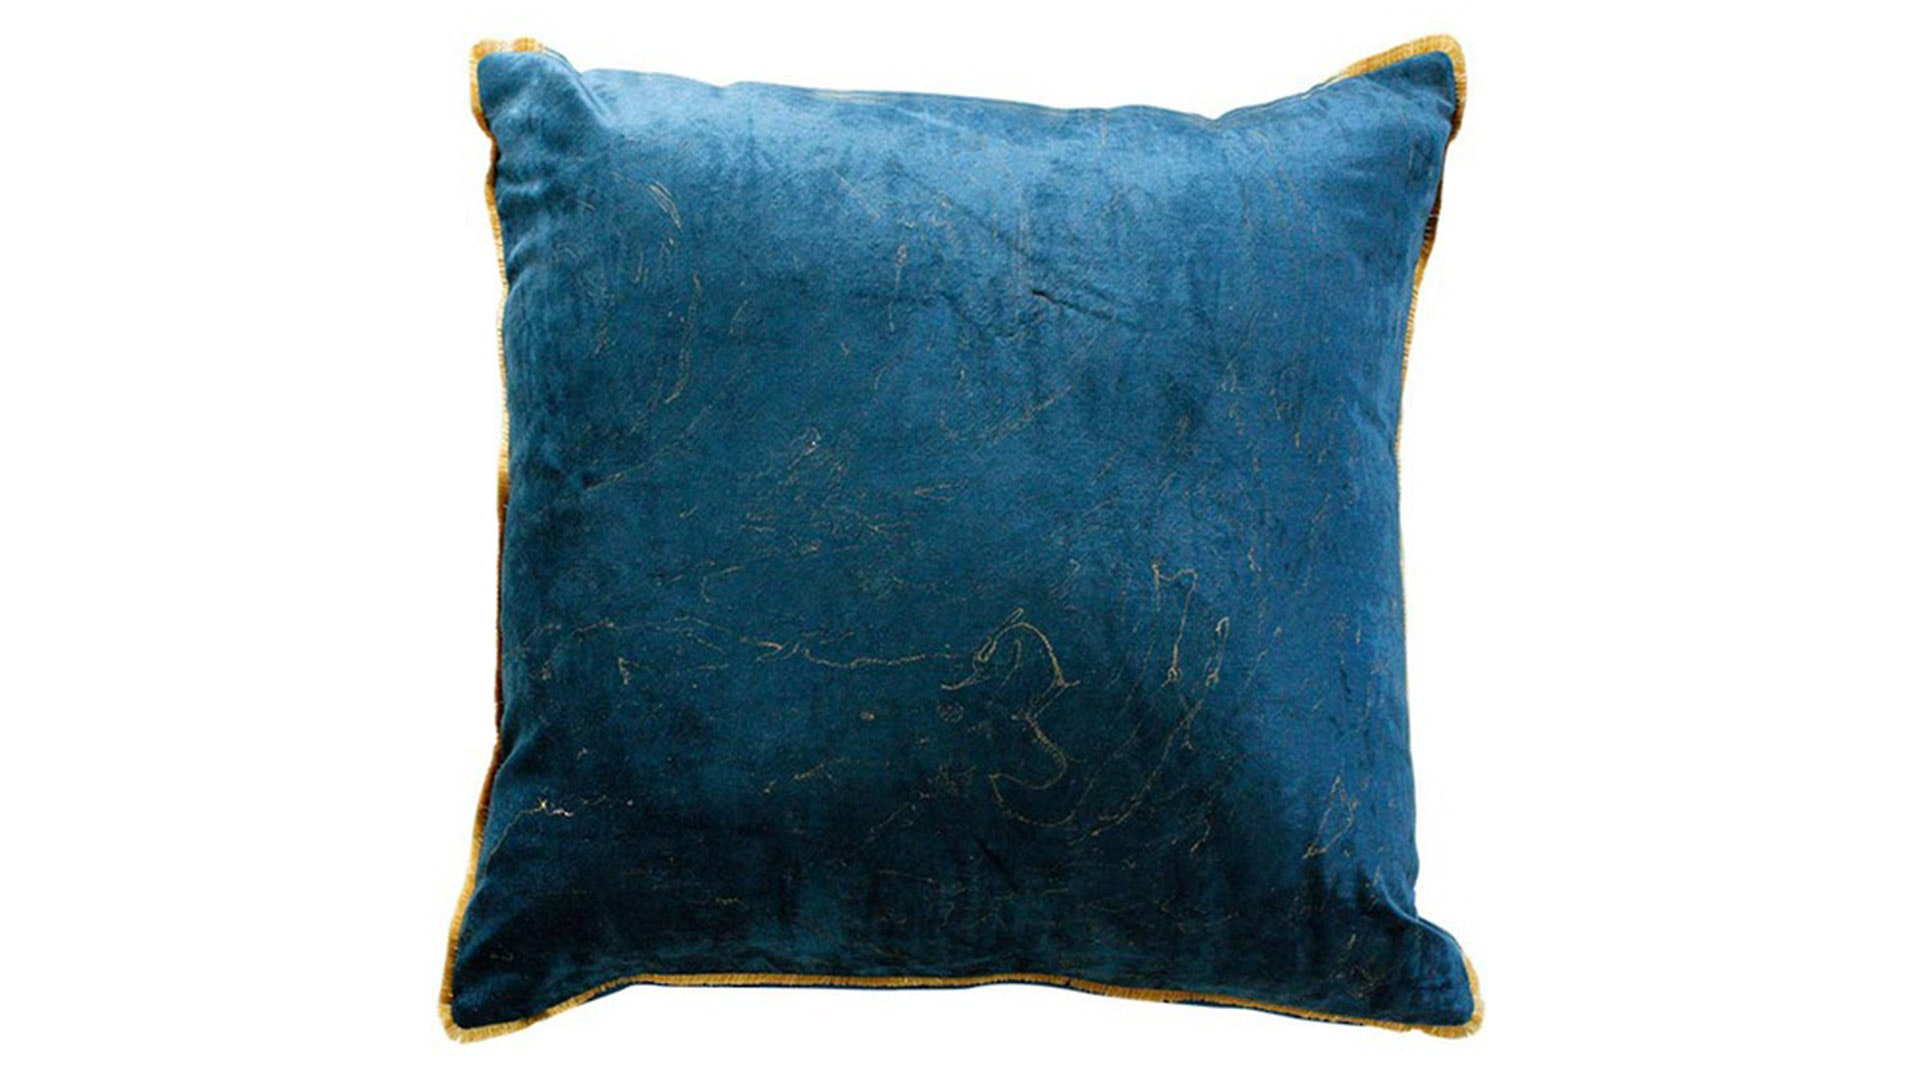 Alexander Feather Filled Cushion by Mulberi